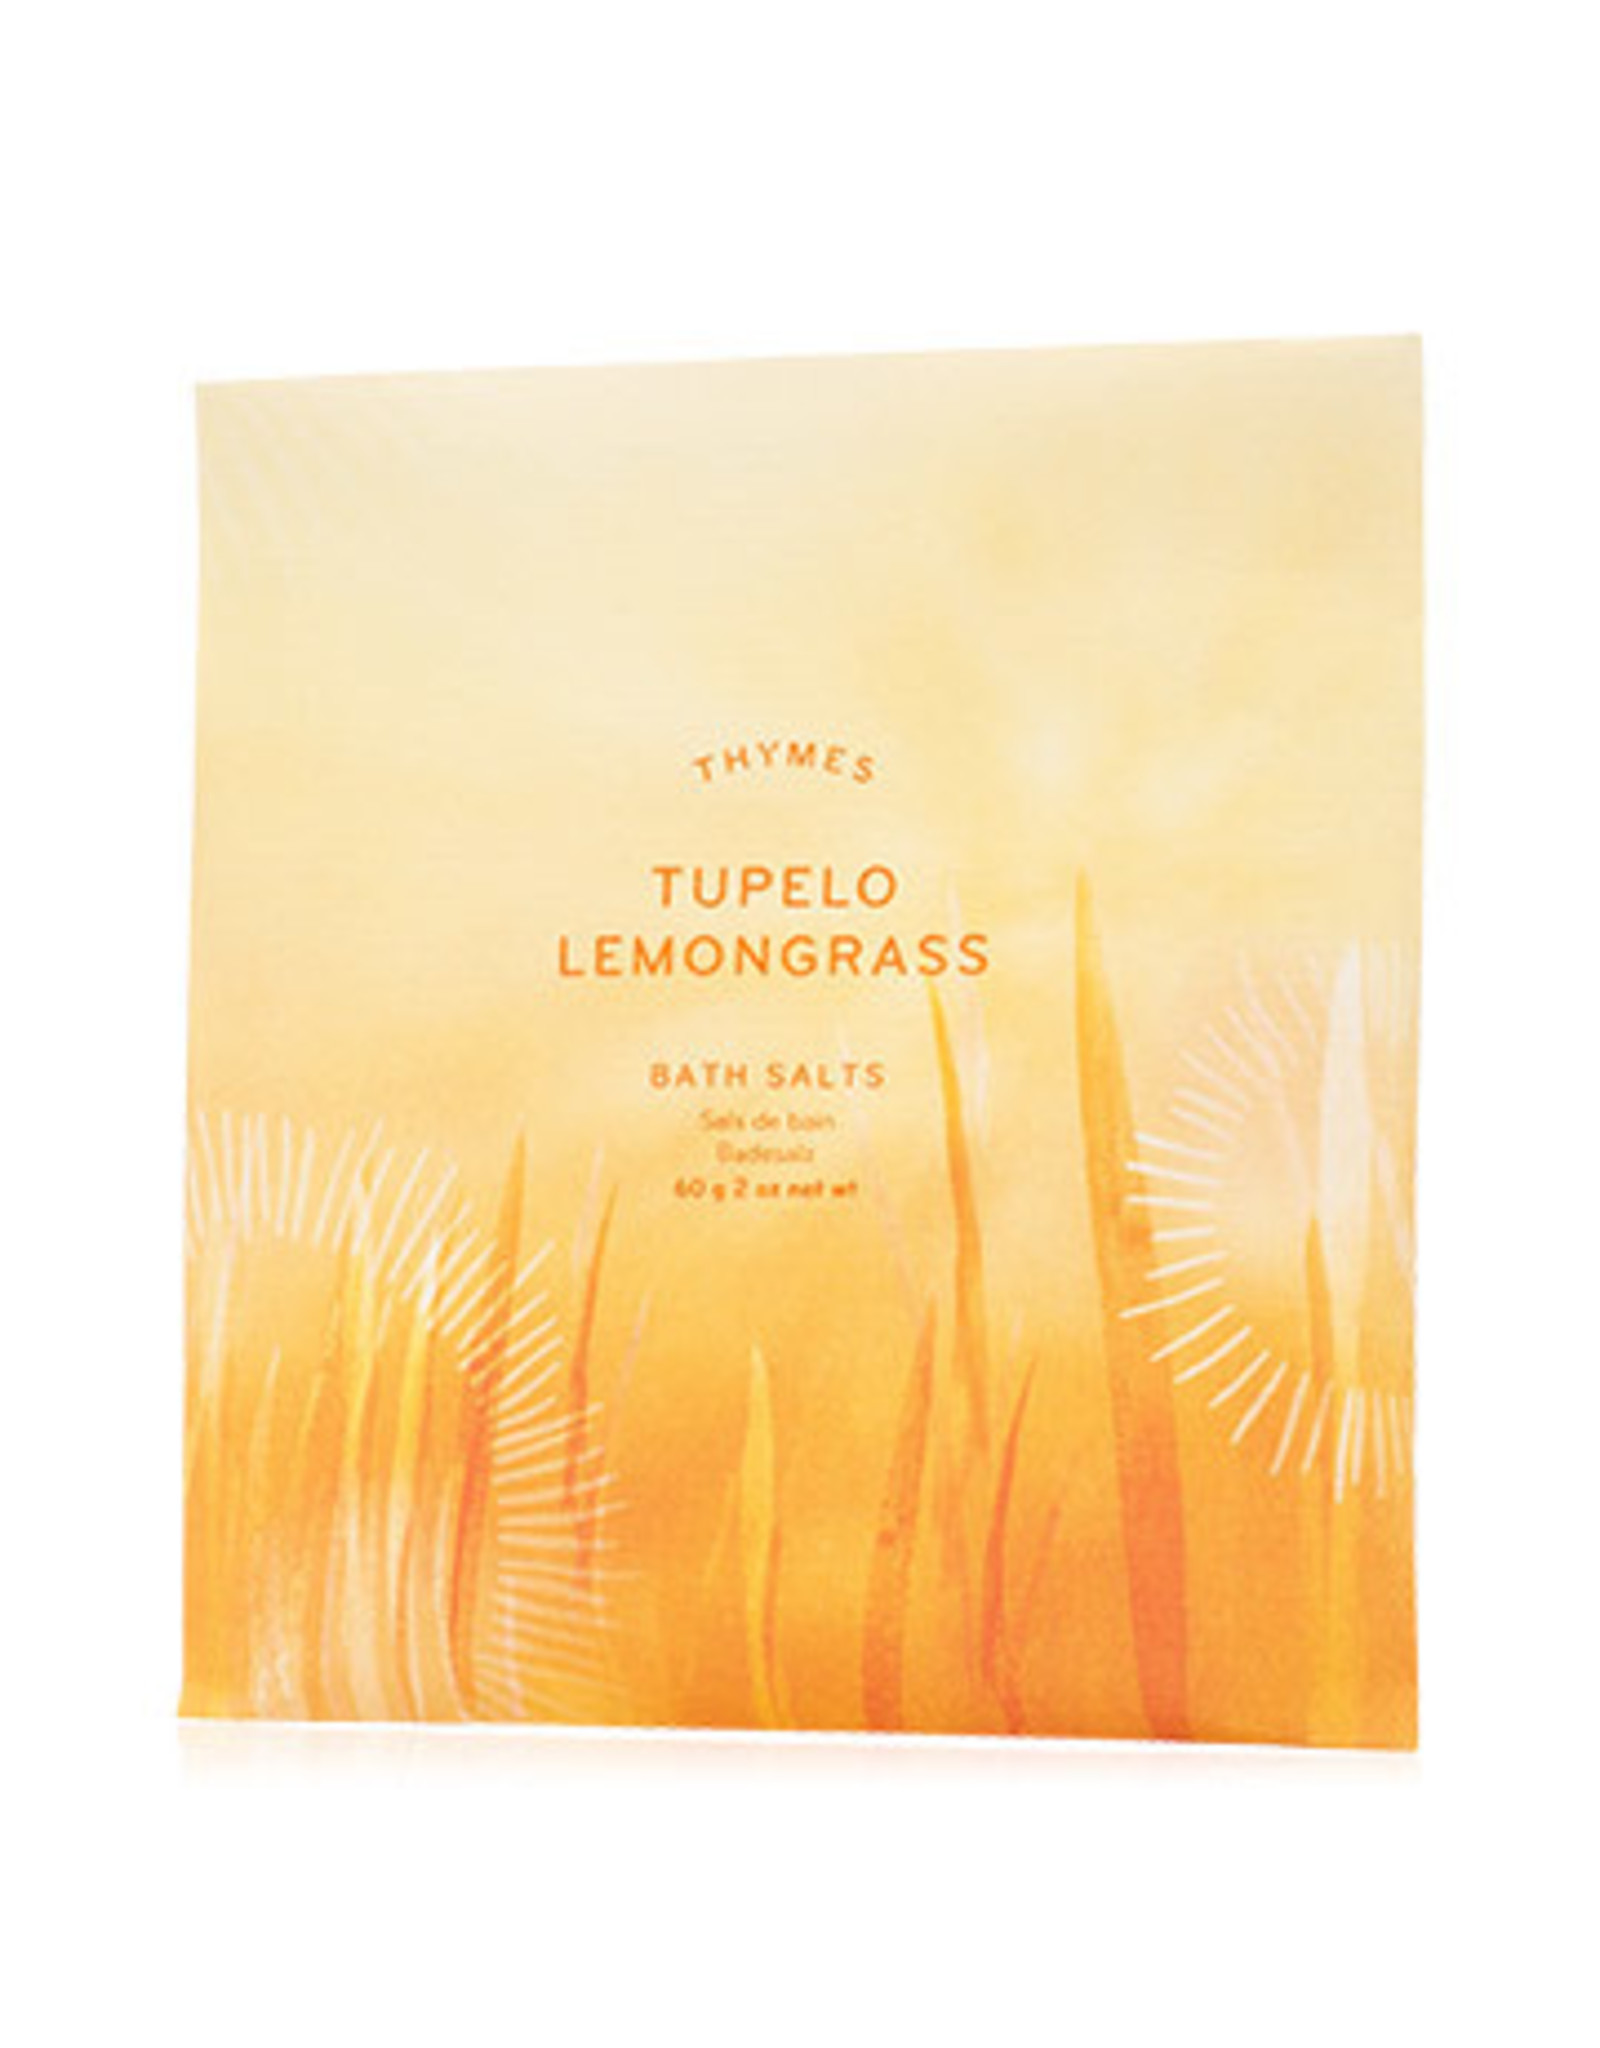 Thymes Thymes Tupelo Lemongrass Bath Salts